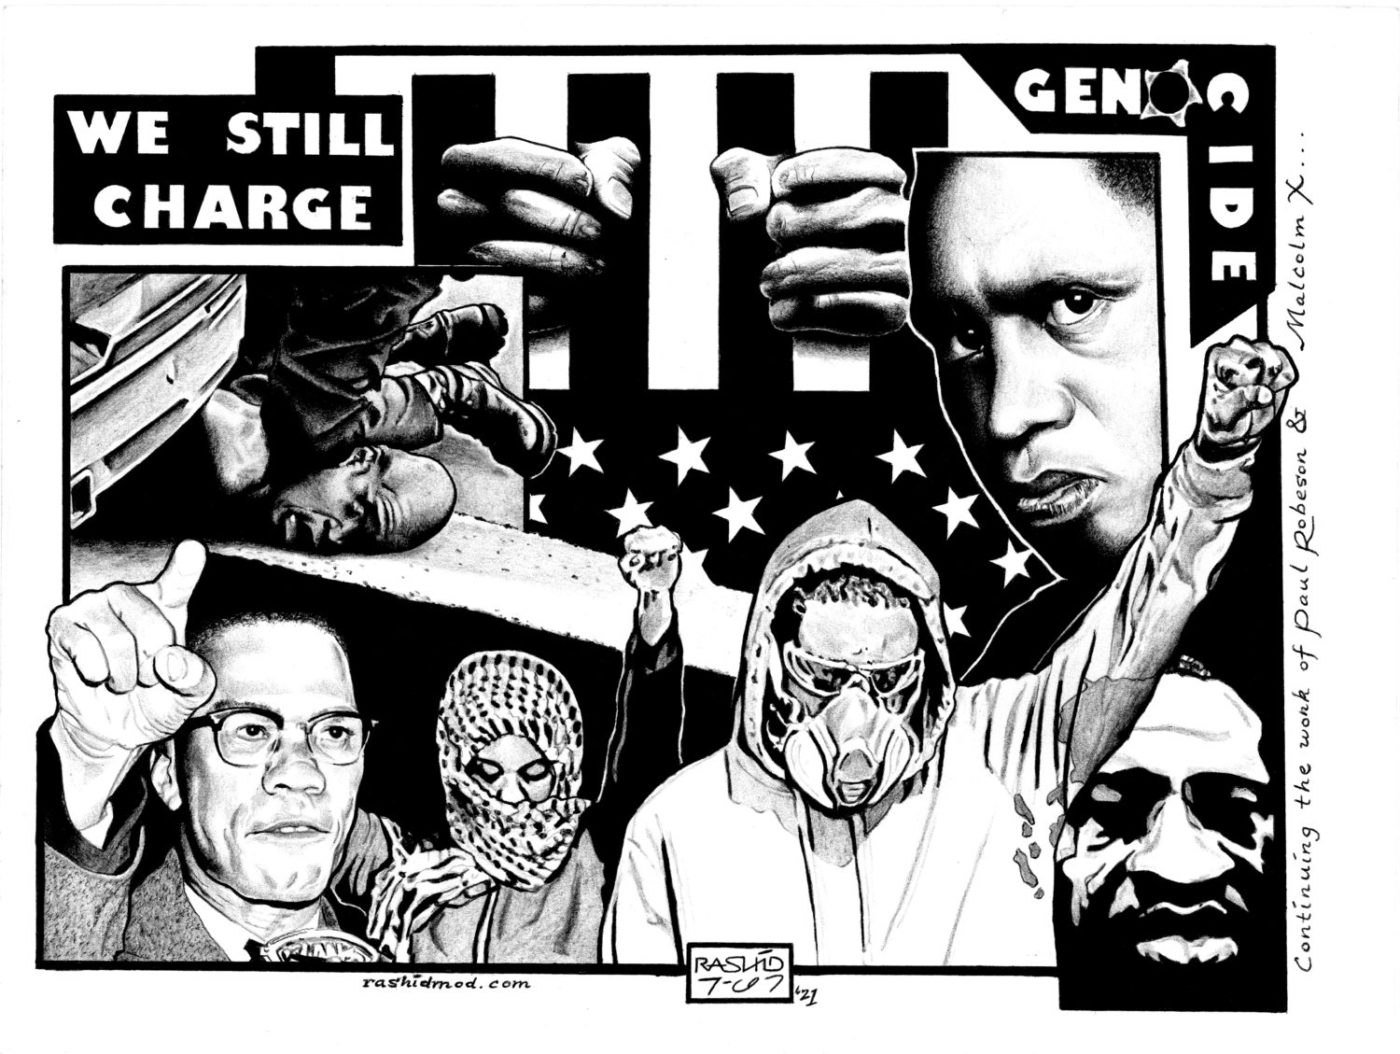 We-Still-Charge-Genocide-art-by-Rashid-042121-1400x1054, Liberate the Caged Voices, Behind Enemy Lines